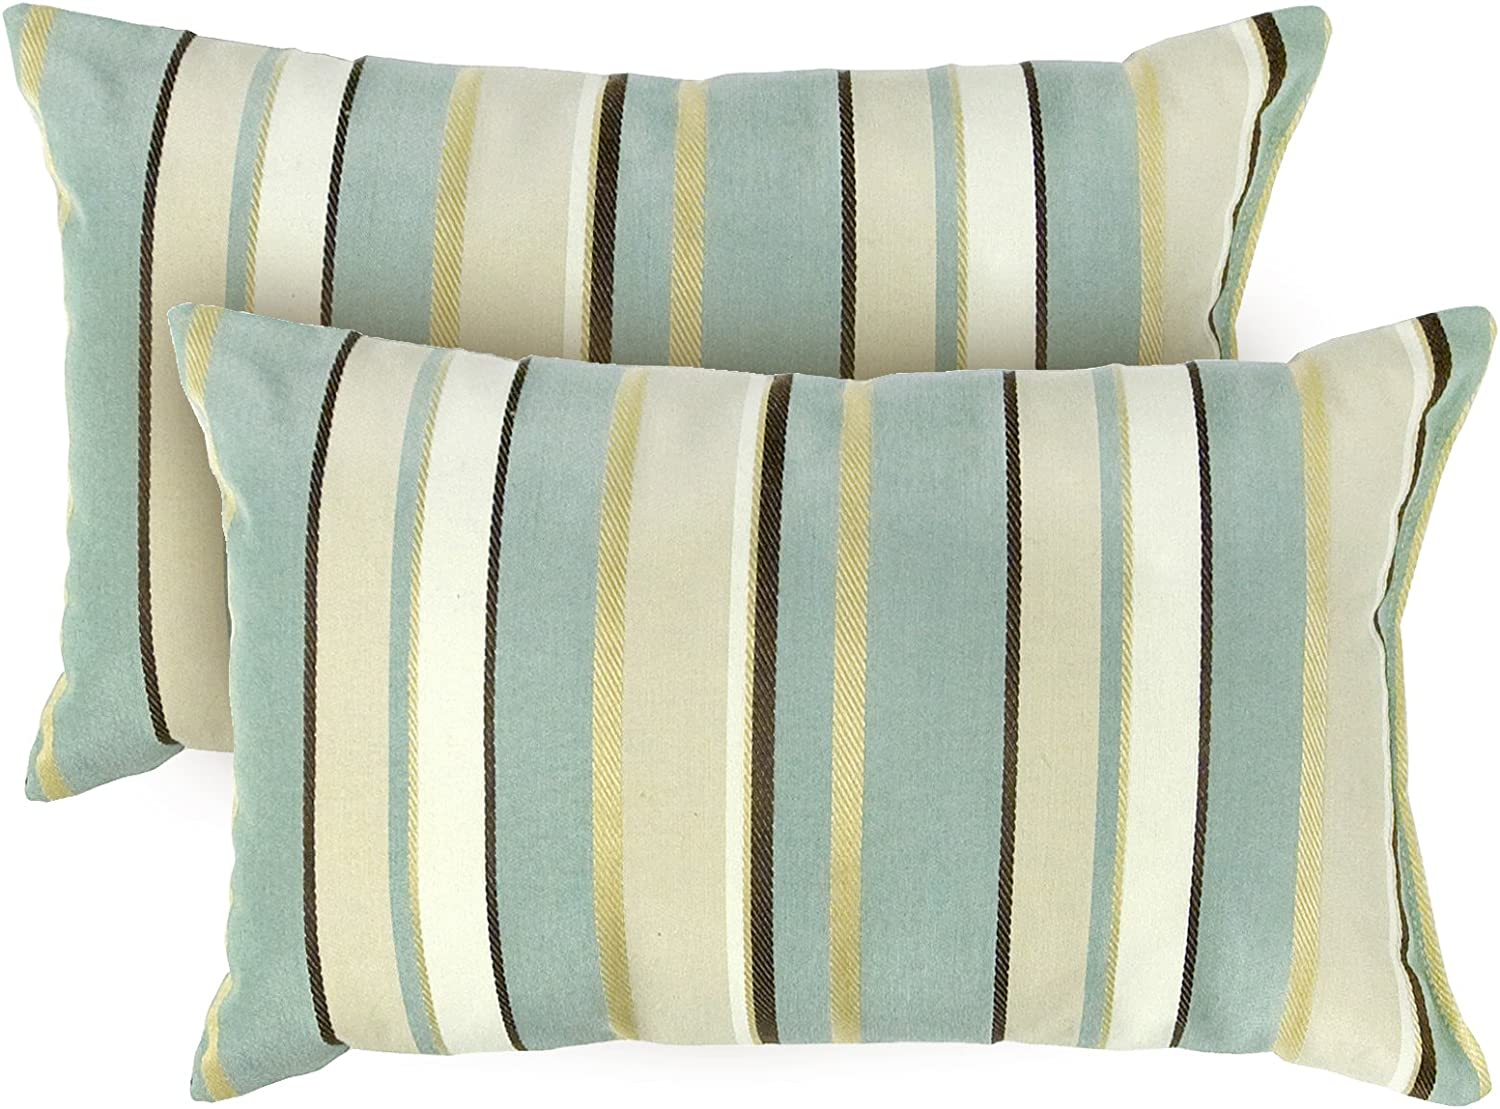 Greendale Home Fashions Rectangle Outdoor Accent Pillows, Spa Stripe, Set of 2